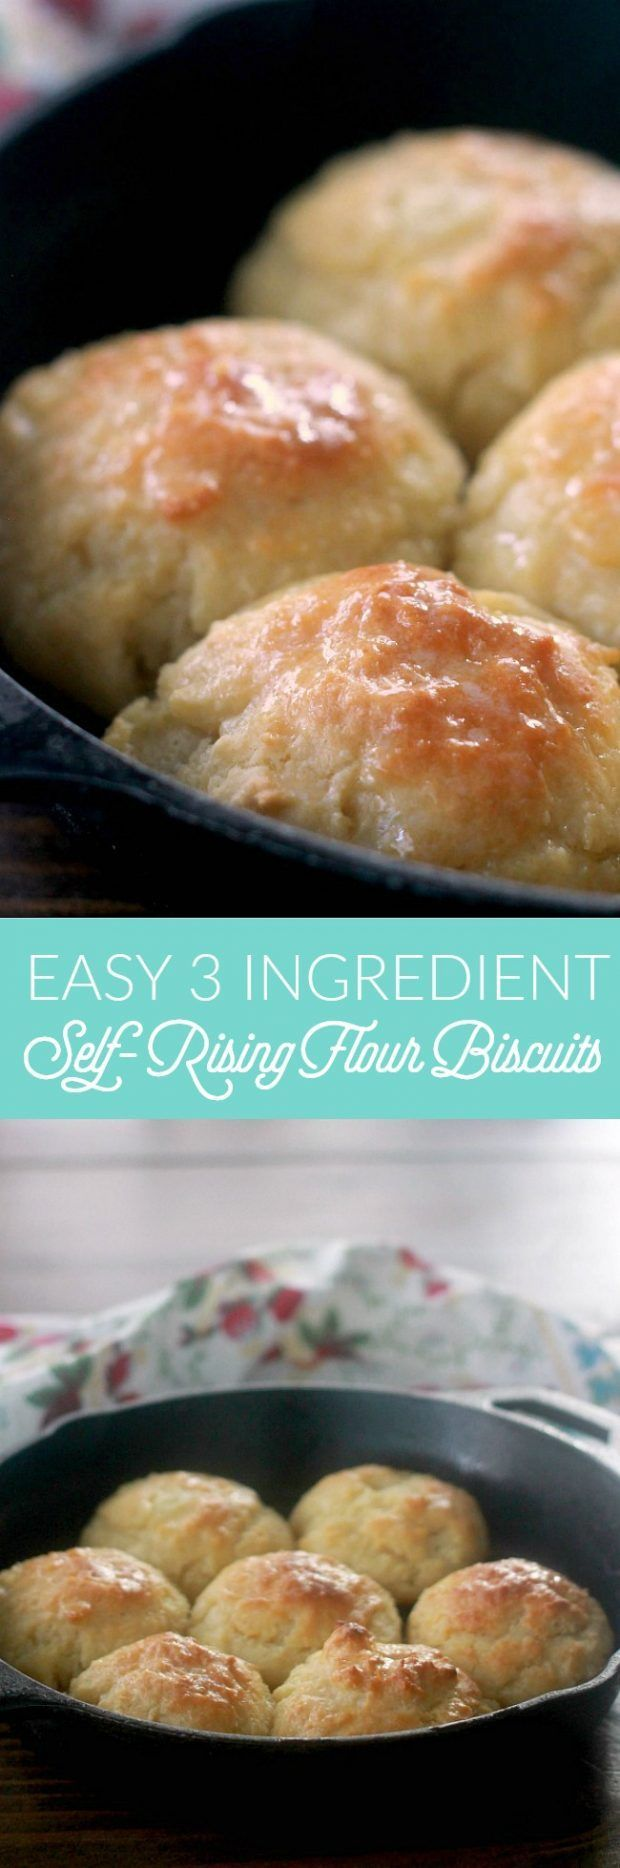 Self-Rising Flour Biscuits are the easiest biscuits you will ever make! The dough for these drop biscuits comes together in less than 10 minutes and uses only 3 ingredients: self-rising flour, salted butter, and milk or buttermilk!